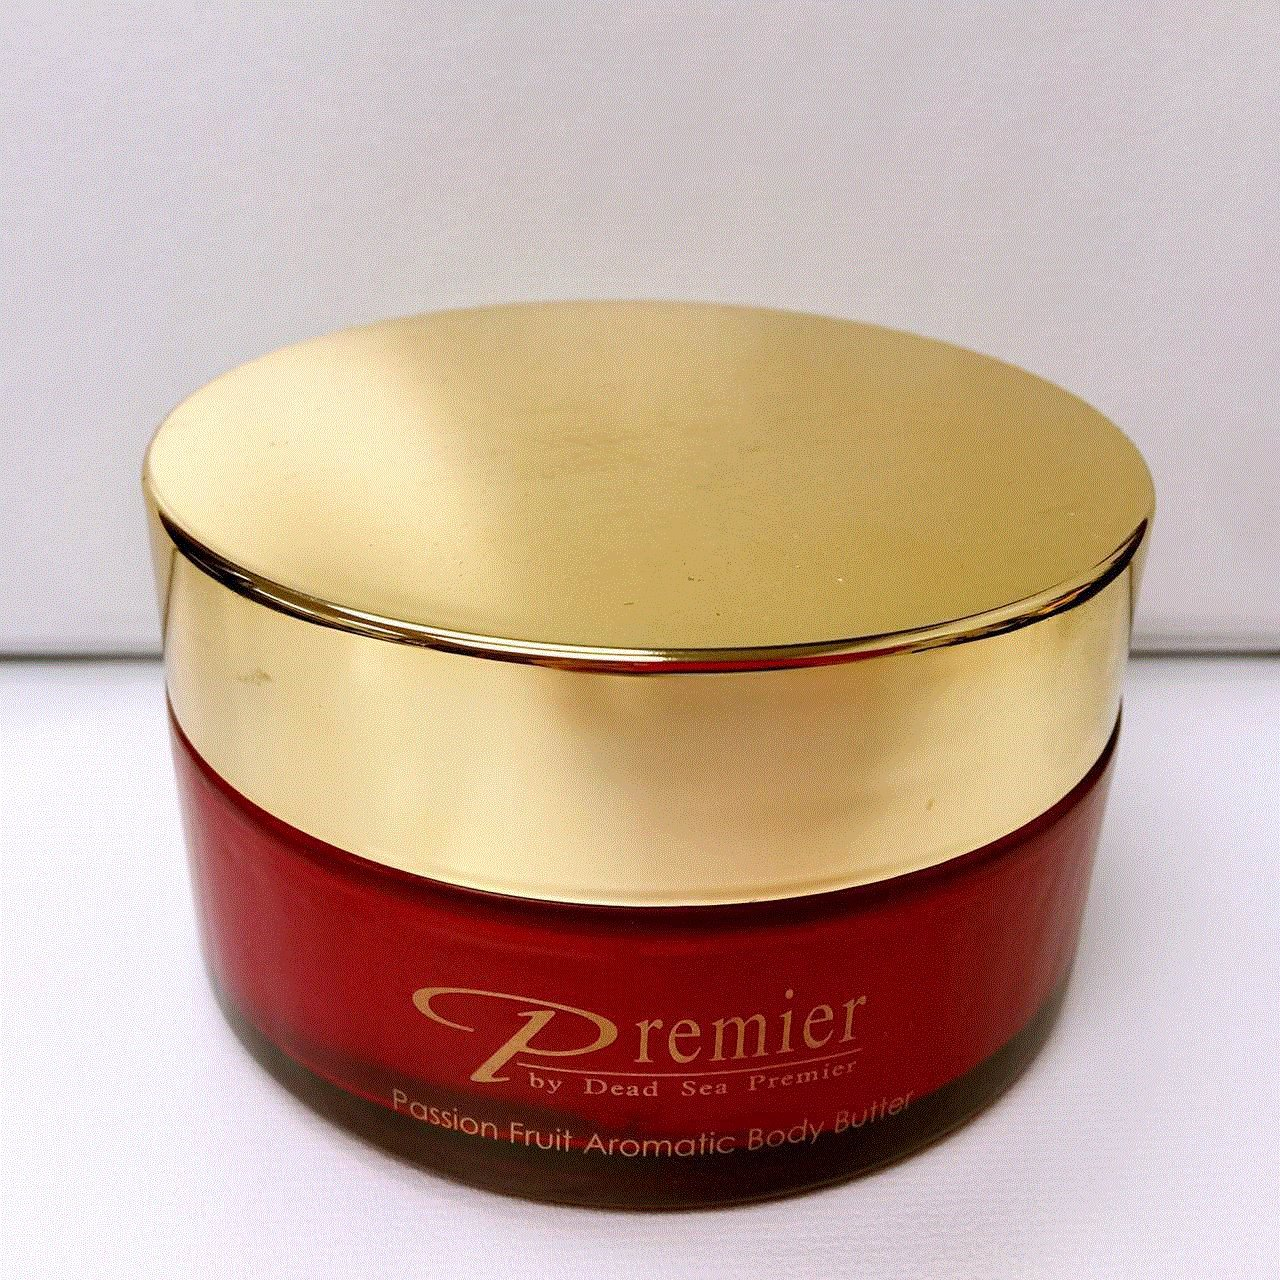 Premier Dead Sea Body Butter, Red, Passion Fruit, 5.95-Fluid Ounce, 175 Ml